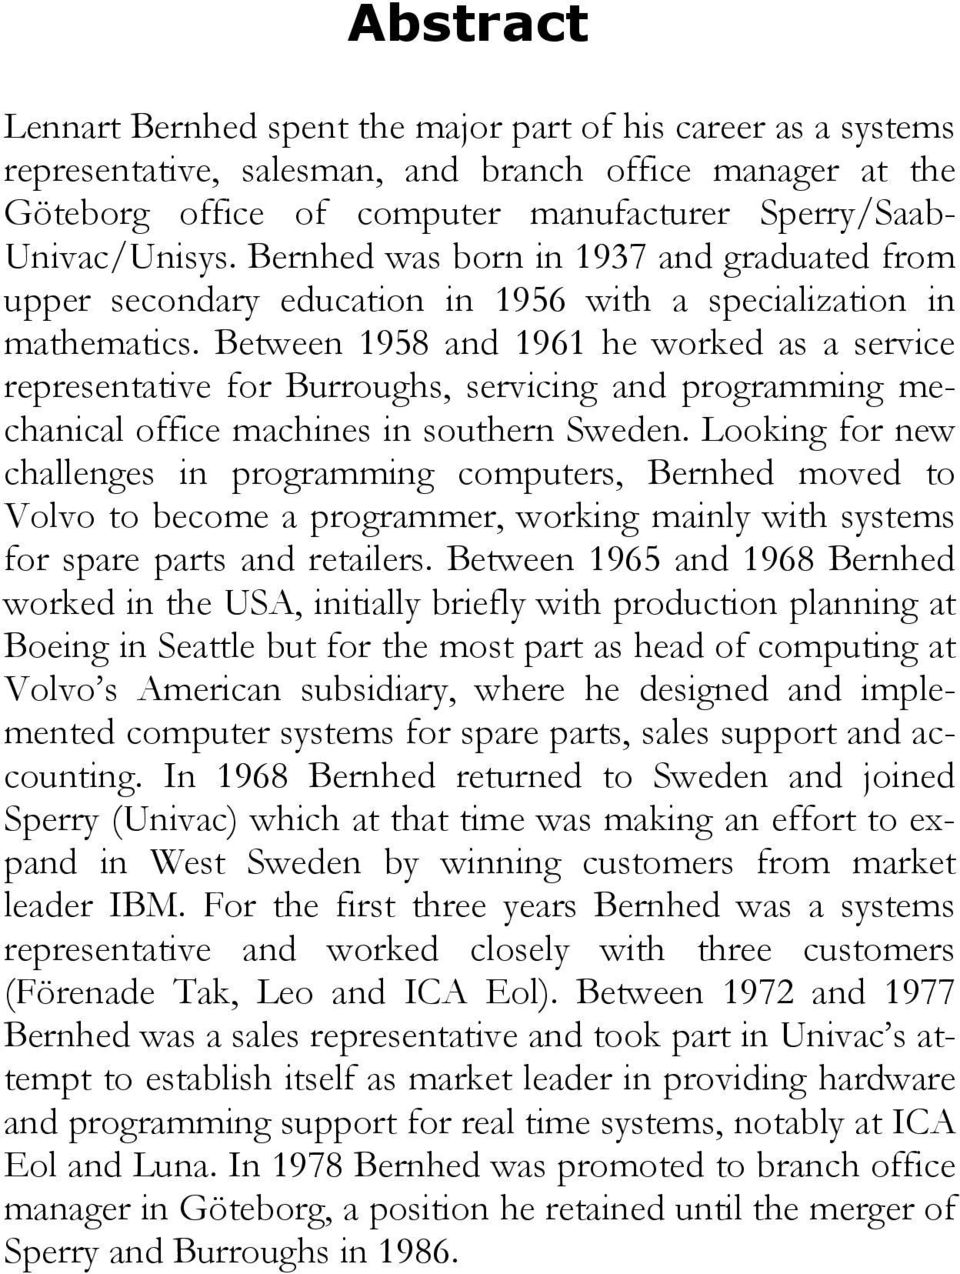 Between 1958 and 1961 he worked as a service representative for Burroughs, servicing and programming mechanical office machines in southern Sweden.